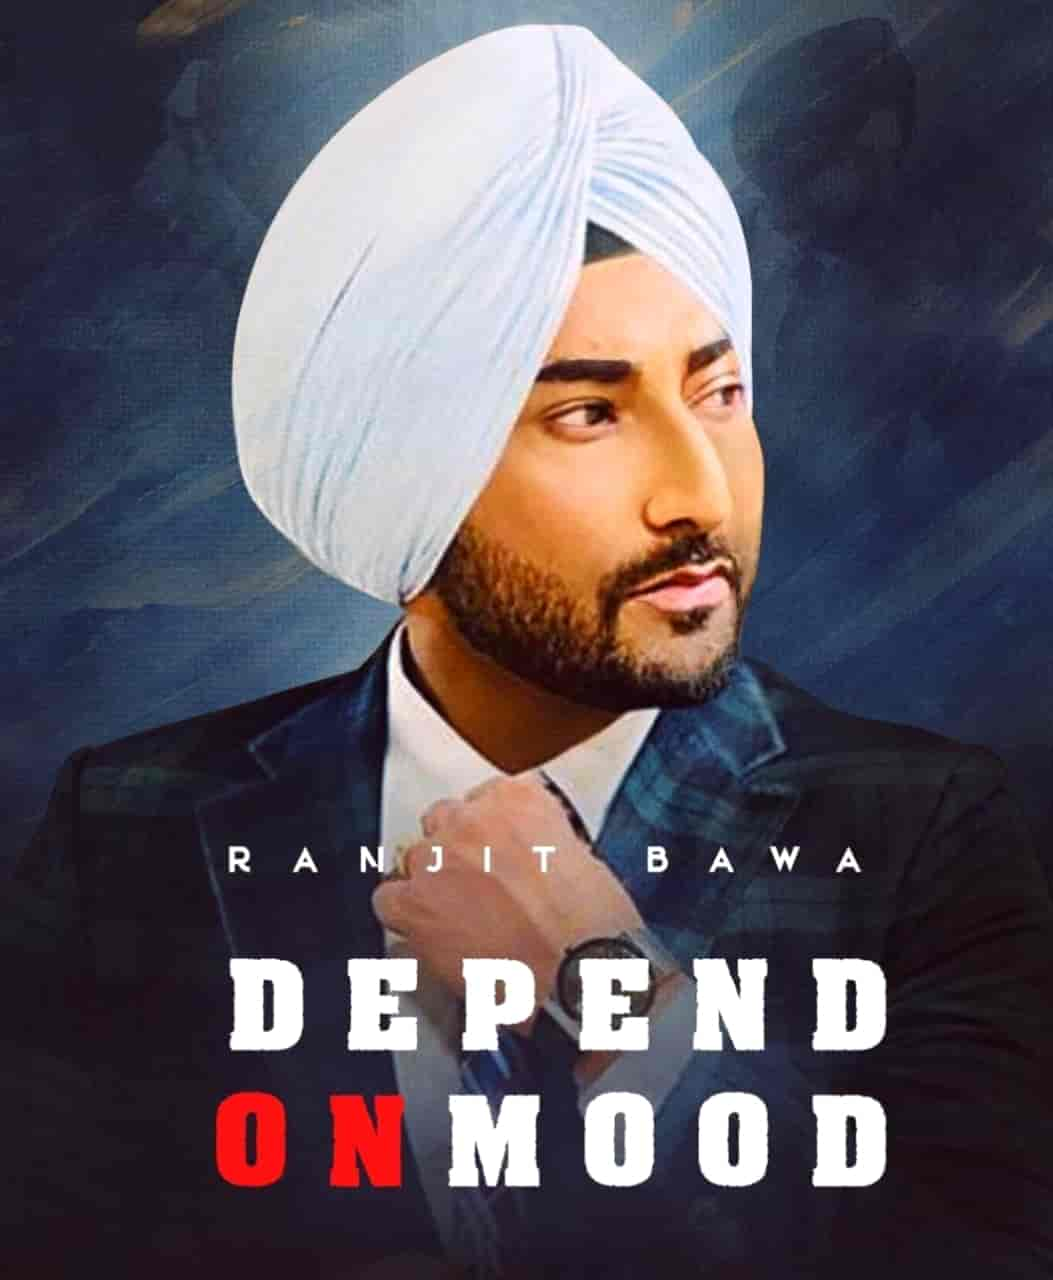 DEMAND ON MOOD LYRICS - Ranjit Bawa